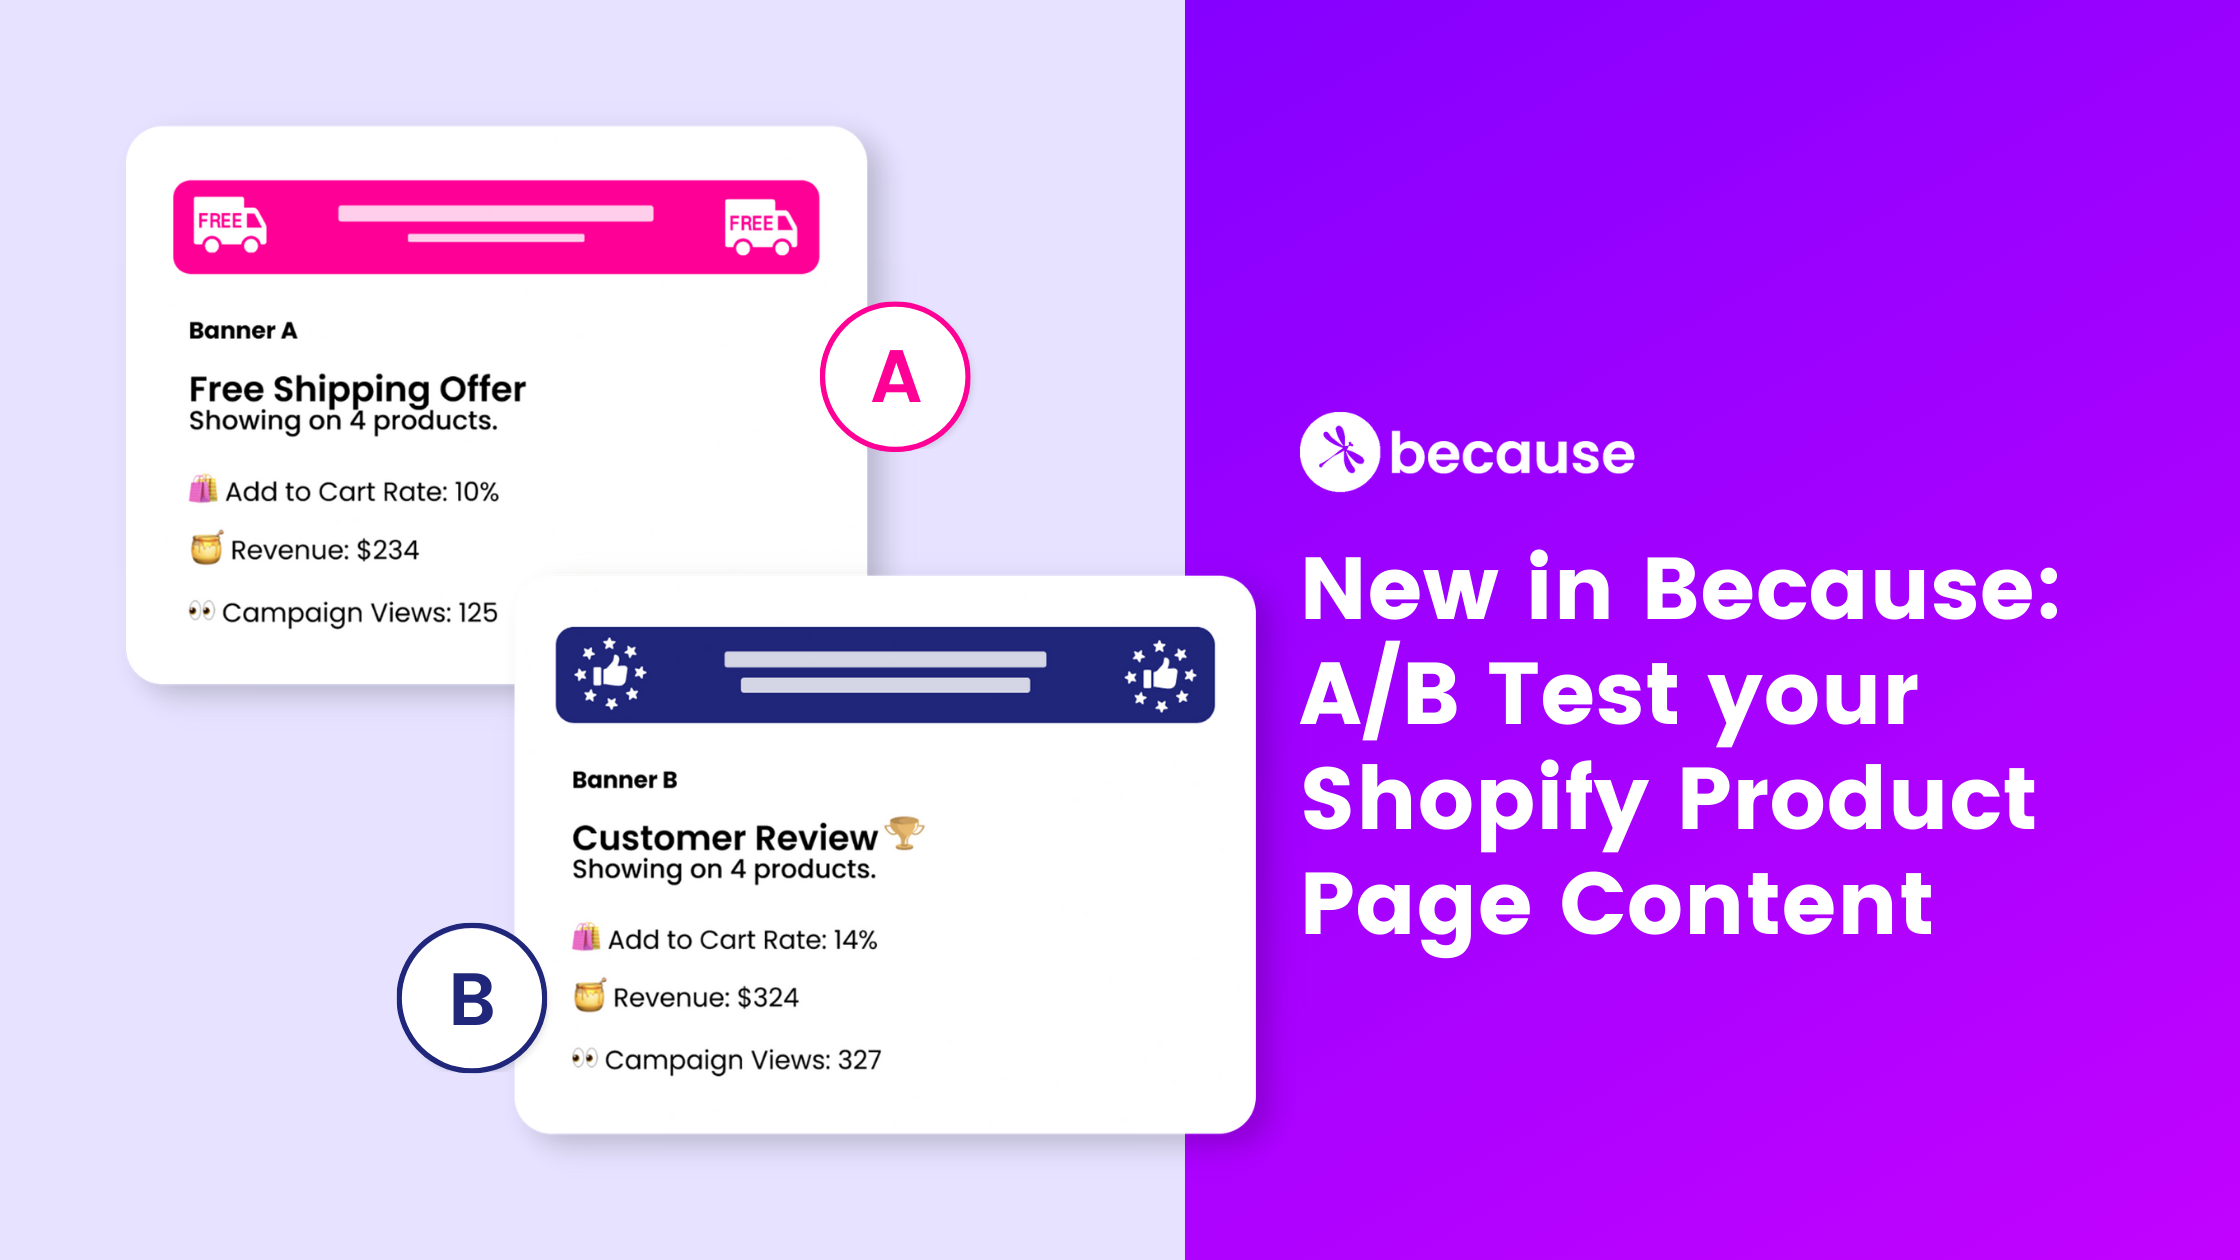 New in Because: A/B Test your Shopify Product Page Content